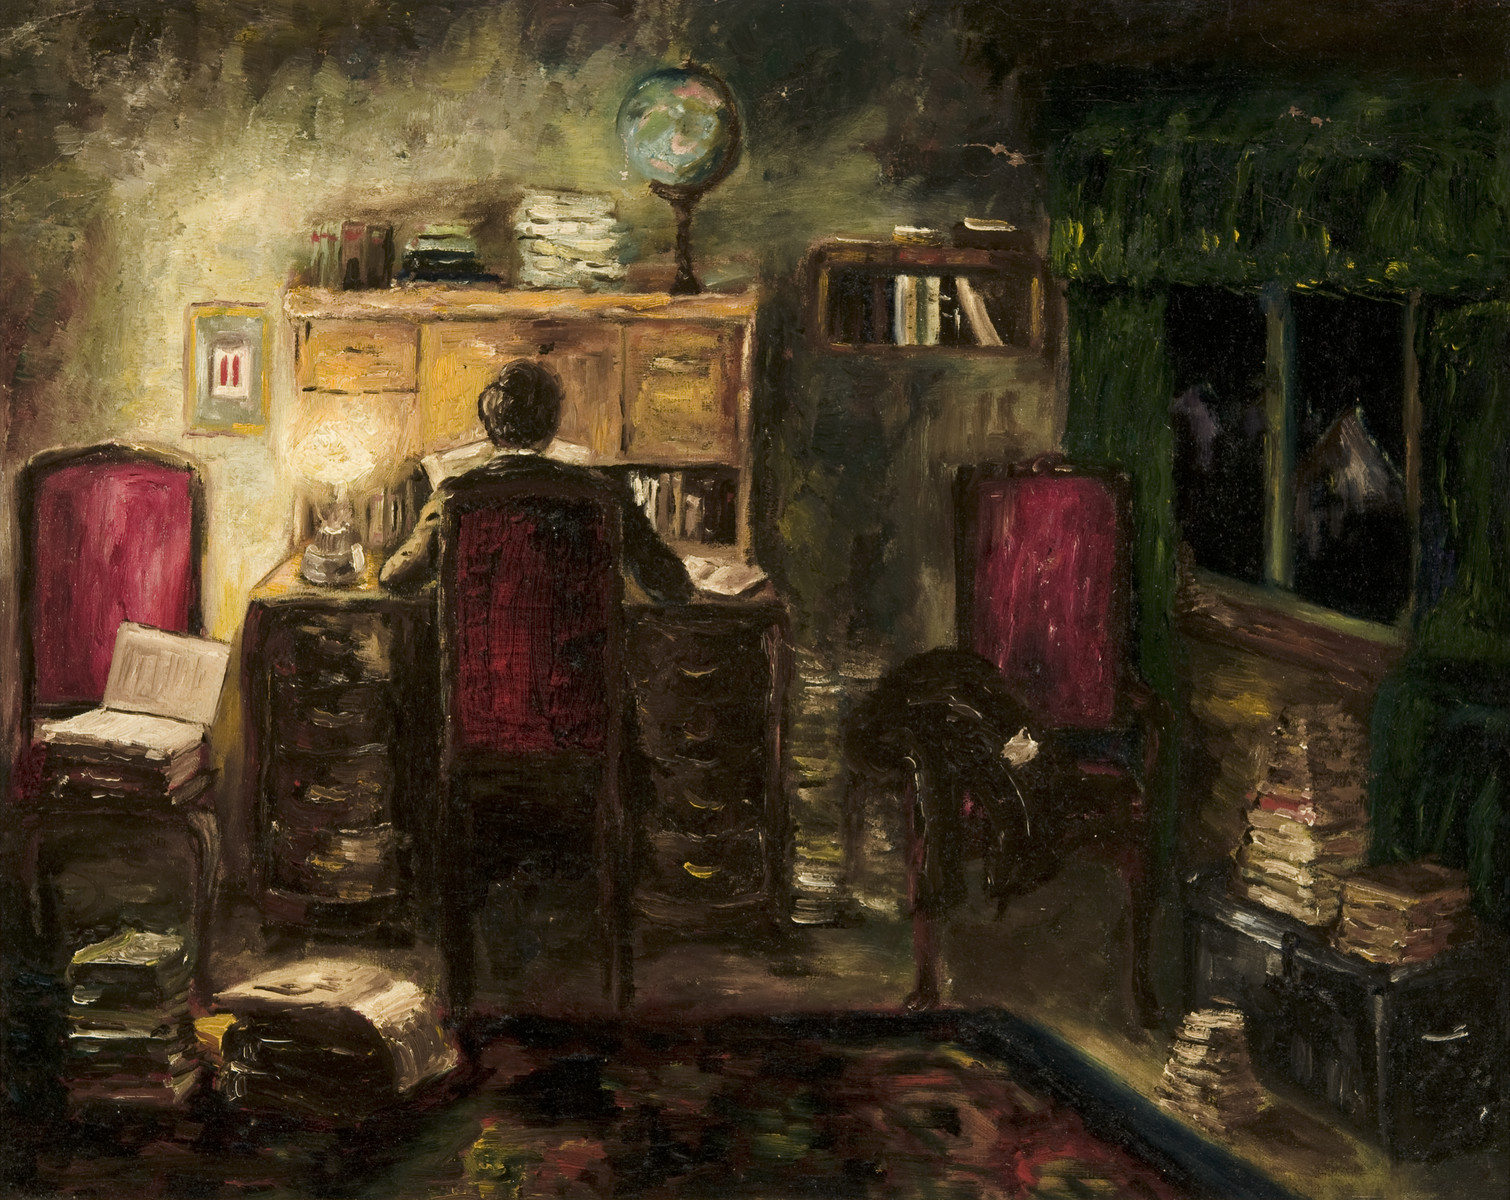 Self portrait showing the artist studying in an imaginary room painted by Heinz Geiringer, a Jewish teenager in Amsterdam, while in hiding to keep himself occupied.  The paintings were hidden under the floorboards of the hiding place and retrieved after the war.